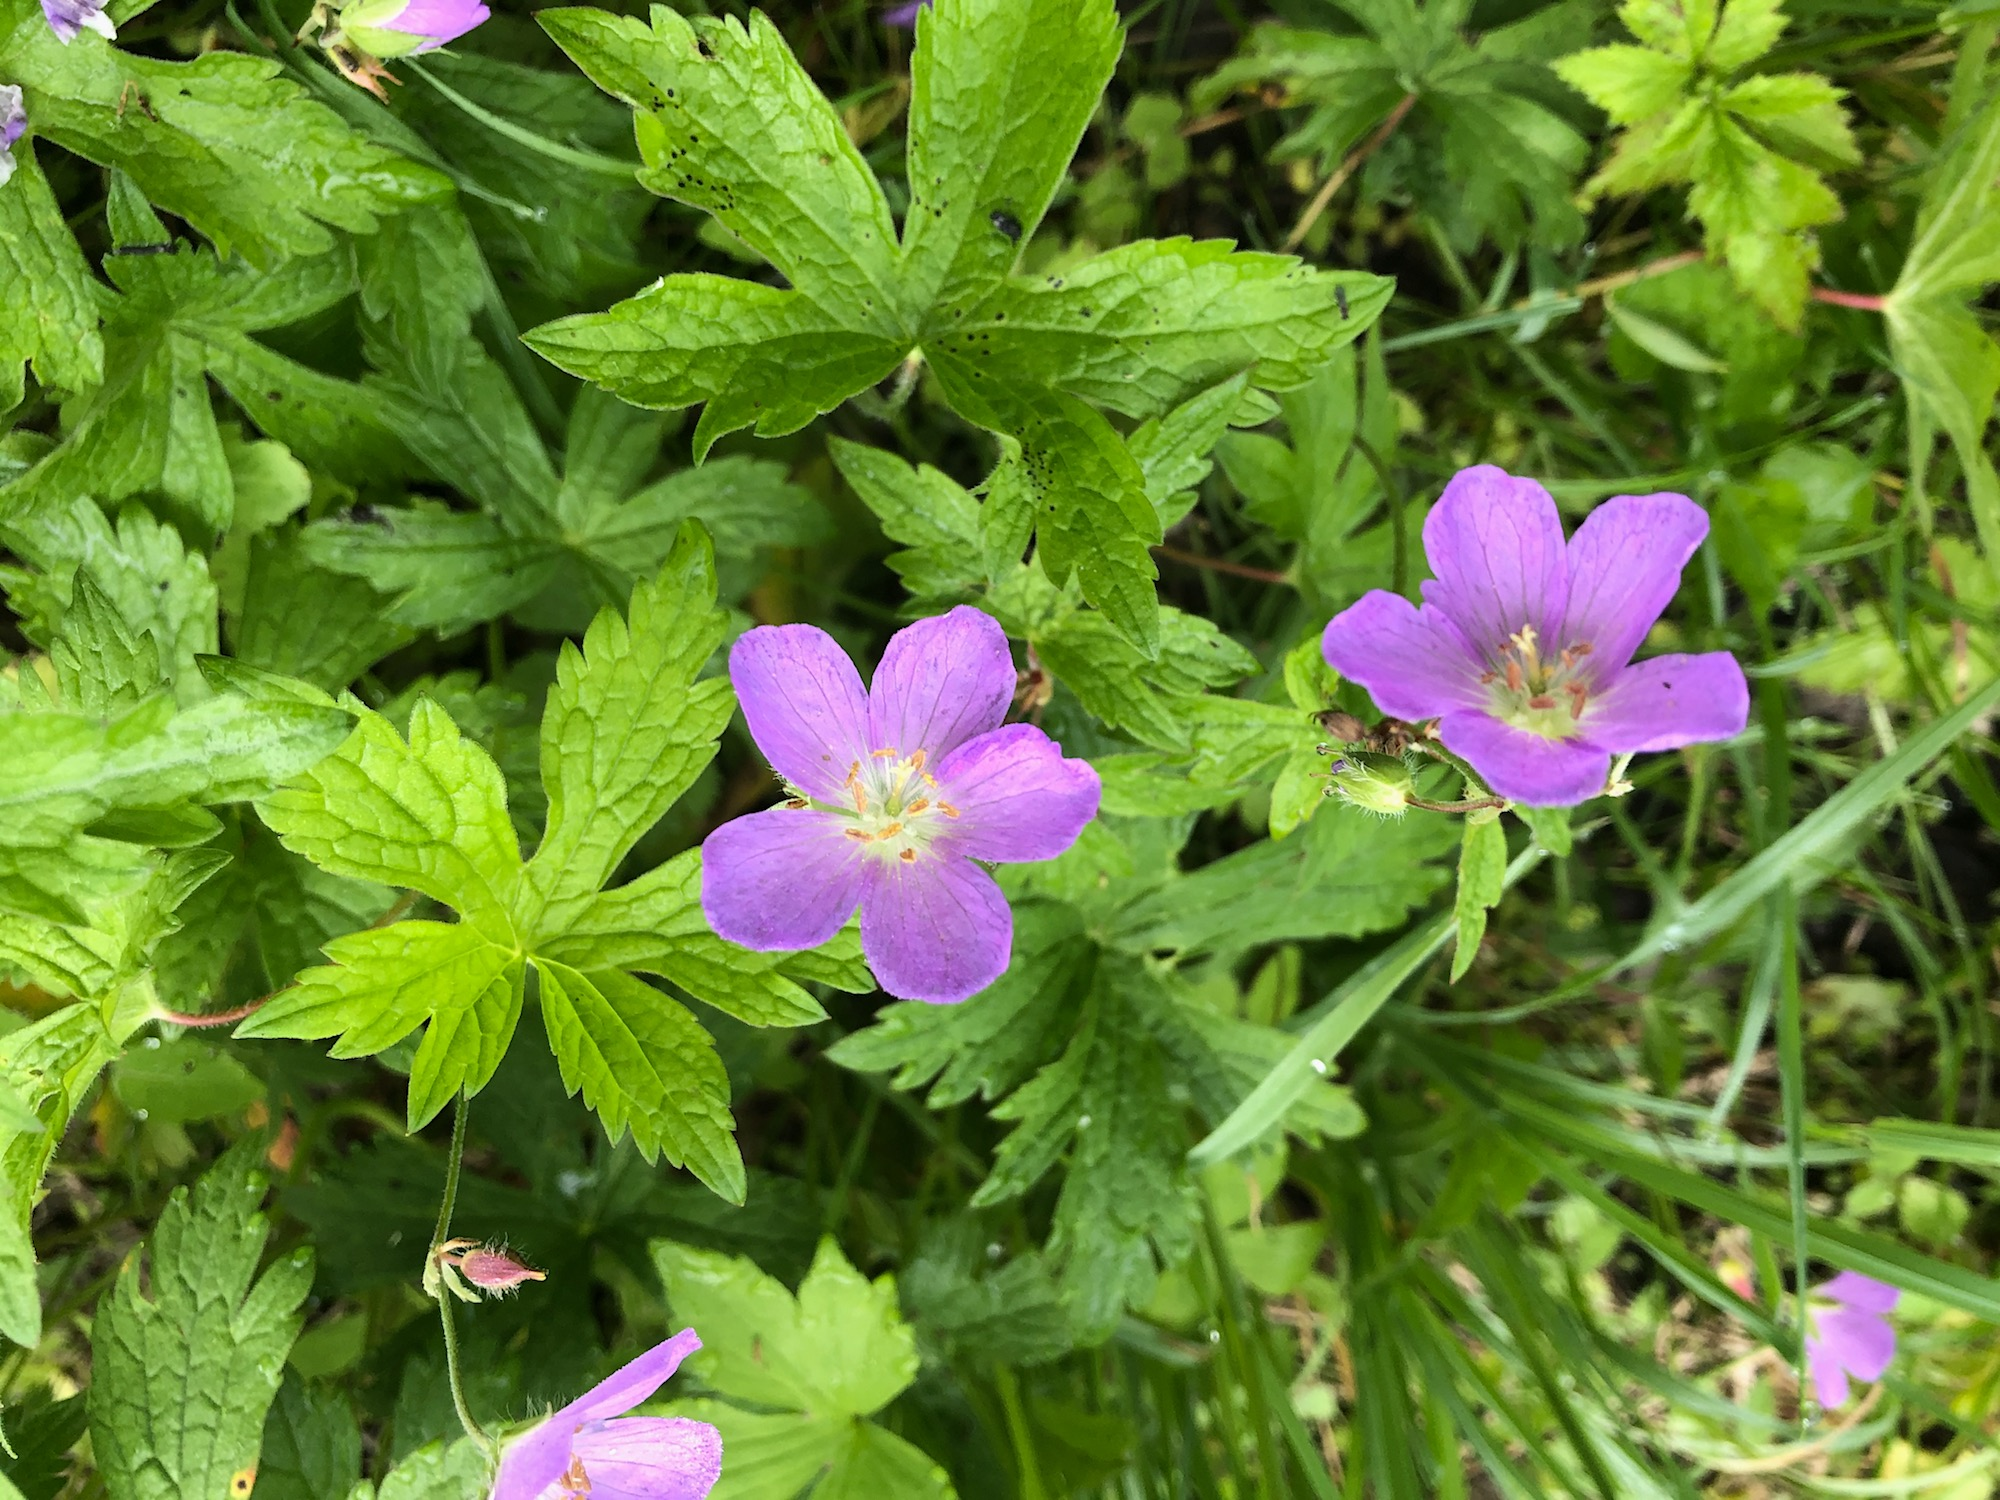 Wild Geranium by Ho-Nee-Um boardwalk in Oak Savanna on May 25, 2020.